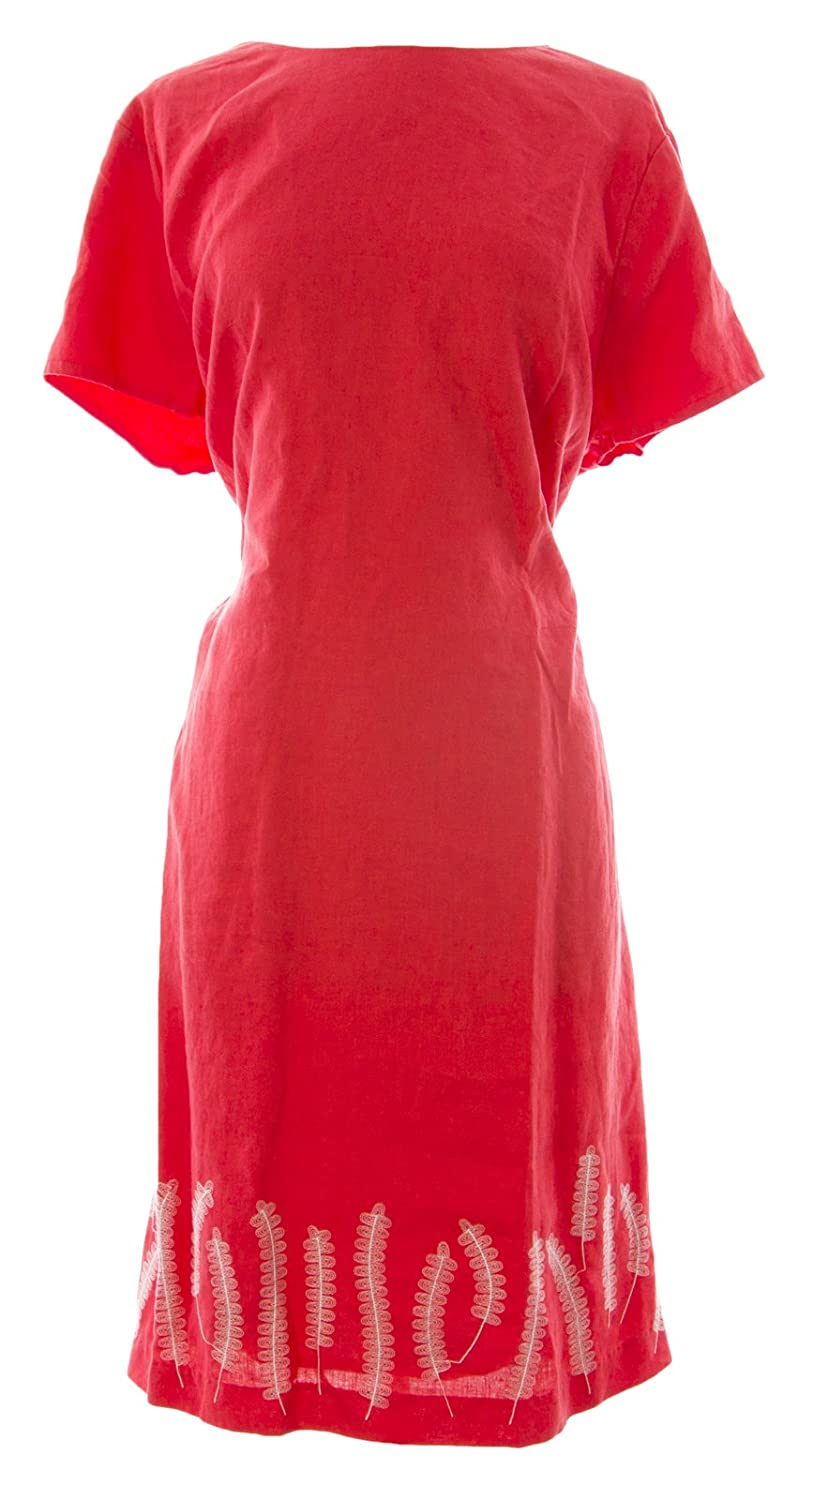 BODEN Women's Stitch Detail Dress Rouge Sunset